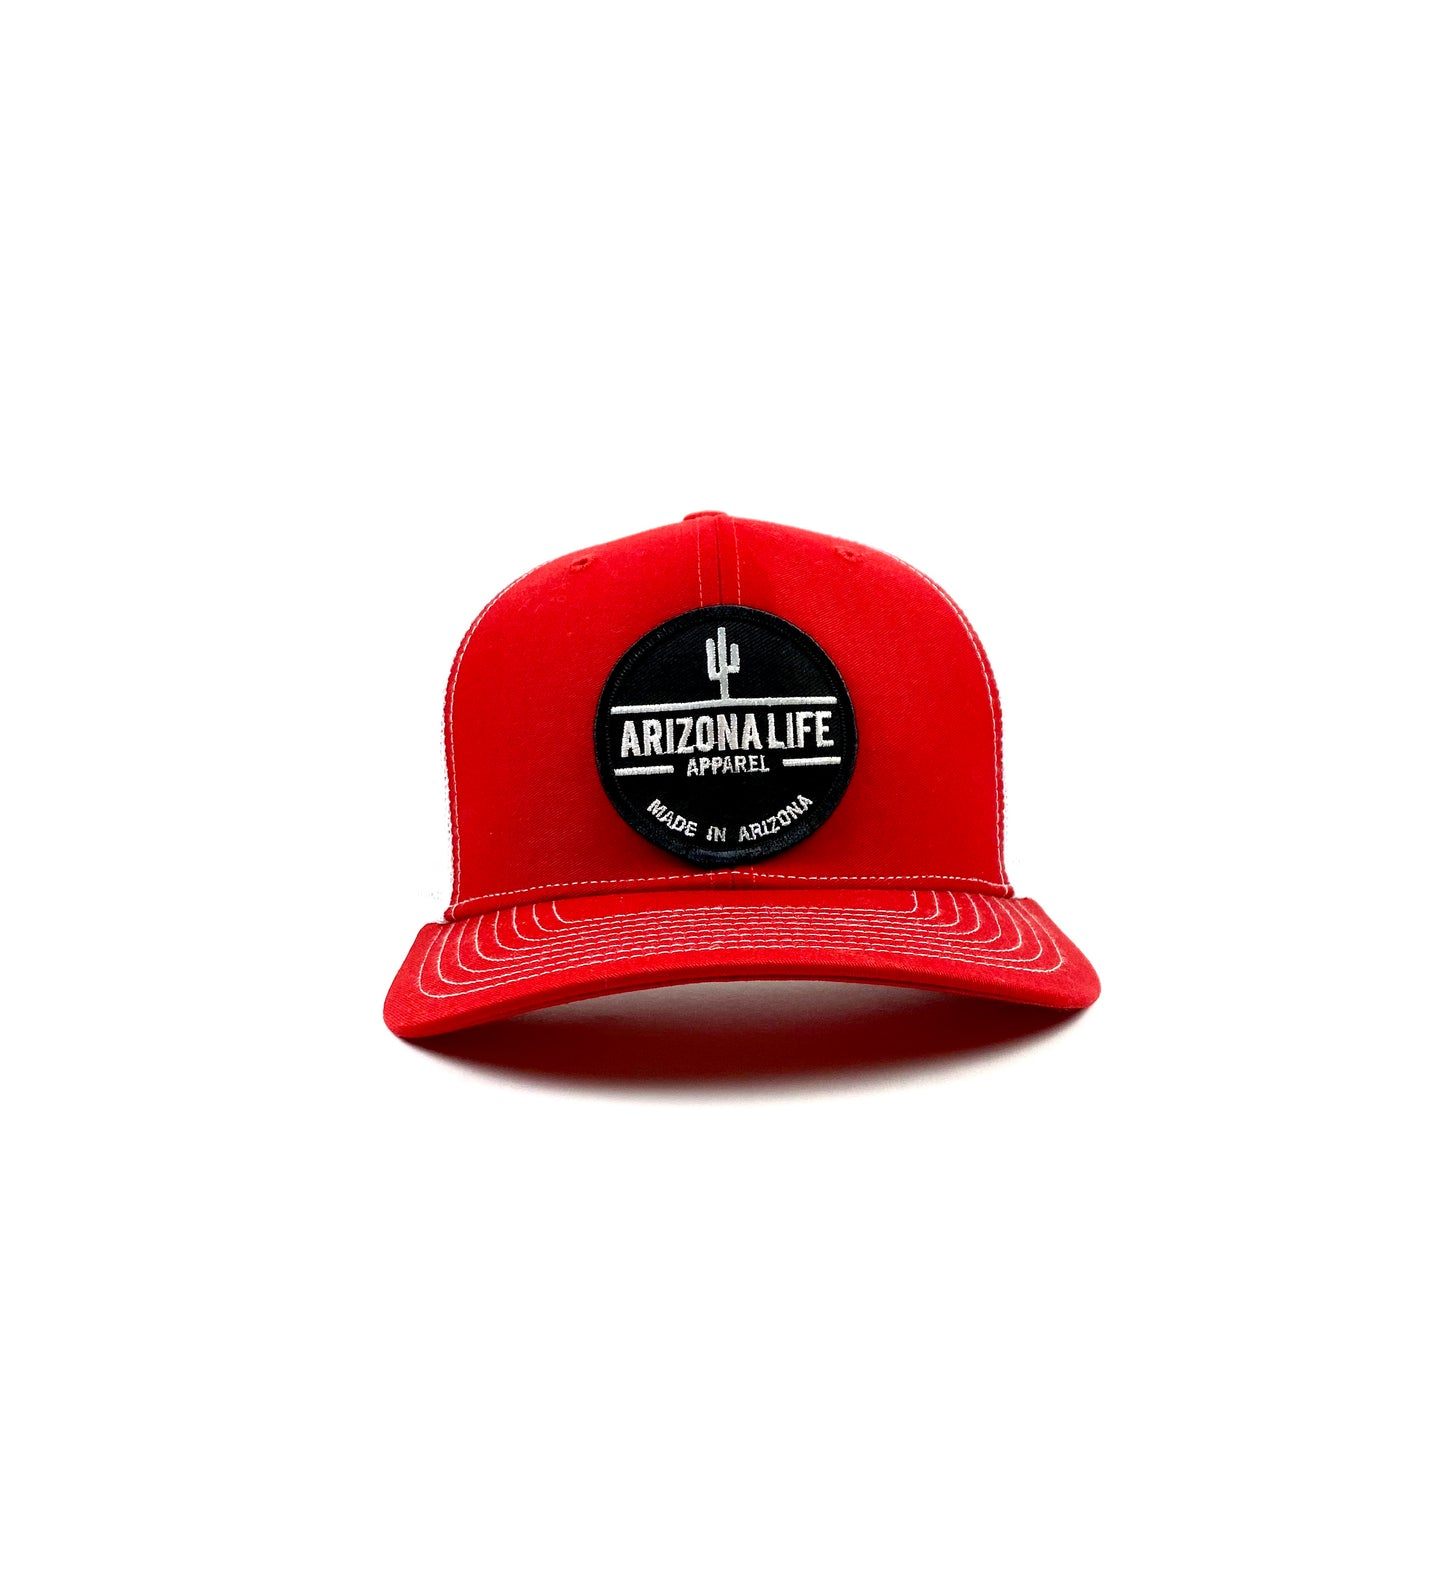 Arizona Life Hat Snapback (Red/White)